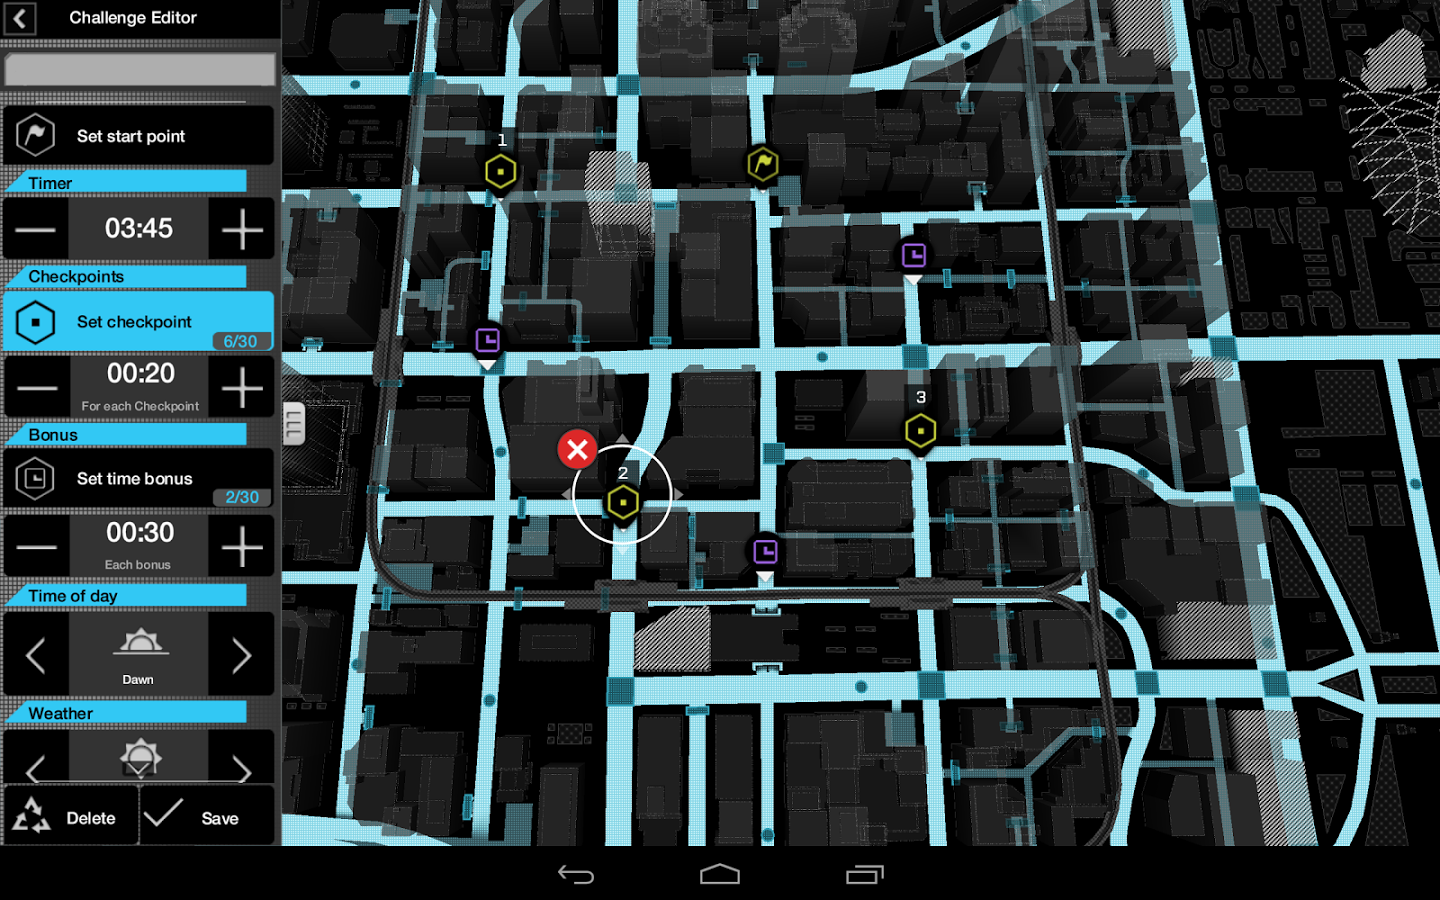 Download The Official Watch Dogs Ctos Companion App For Android